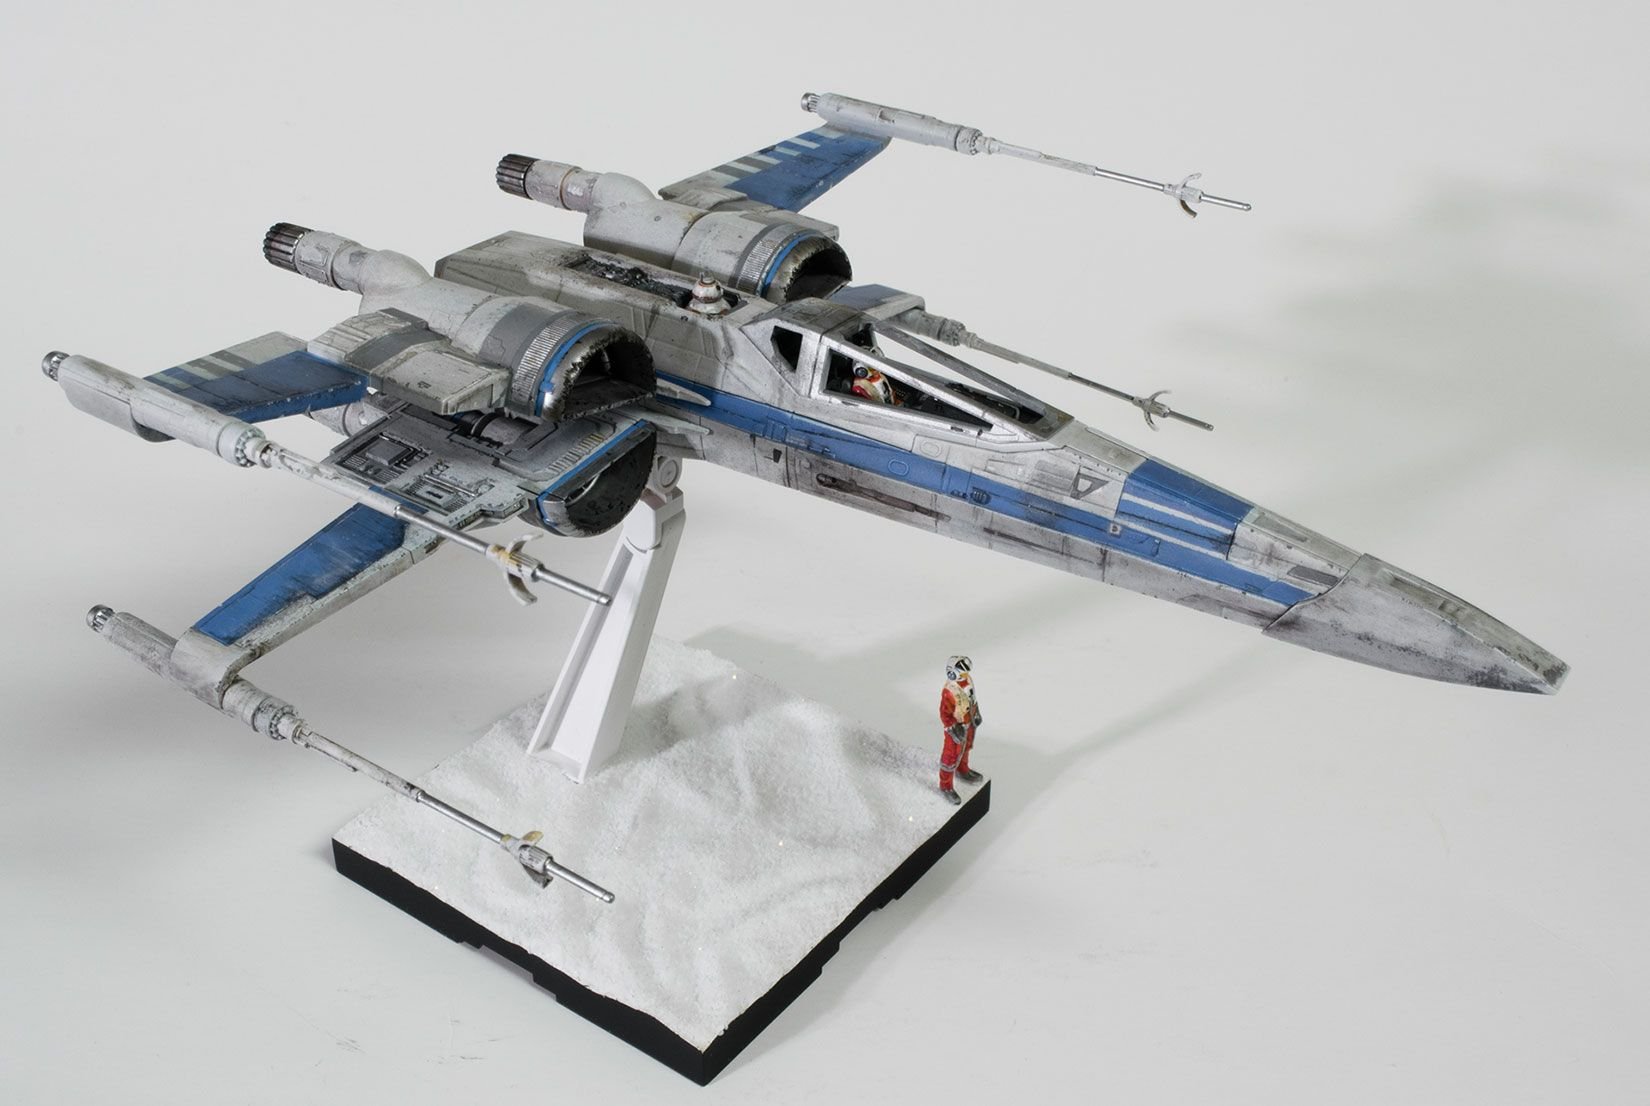 Bandai 1 72 Resistance X Wing Ready For Inspection Sf Realspace Star Wars Vehicles Star Wars Models Star Wars Geek